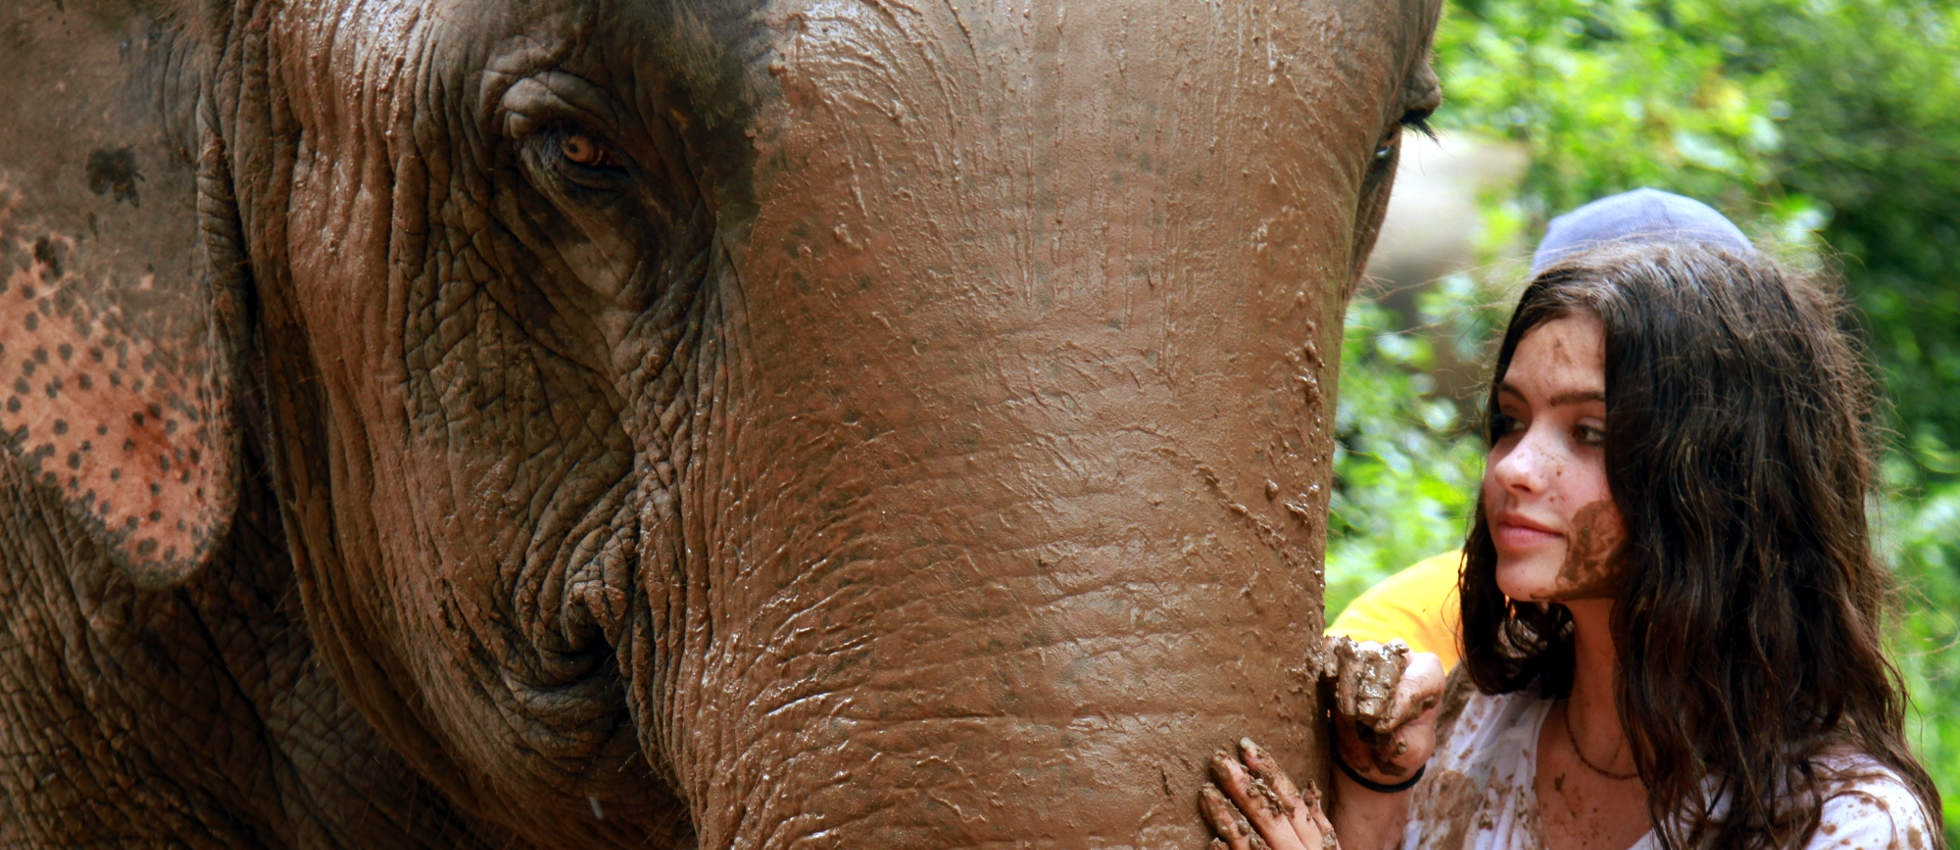 Summer Travel Programs for Teens - Camper with Elephant in Thailand